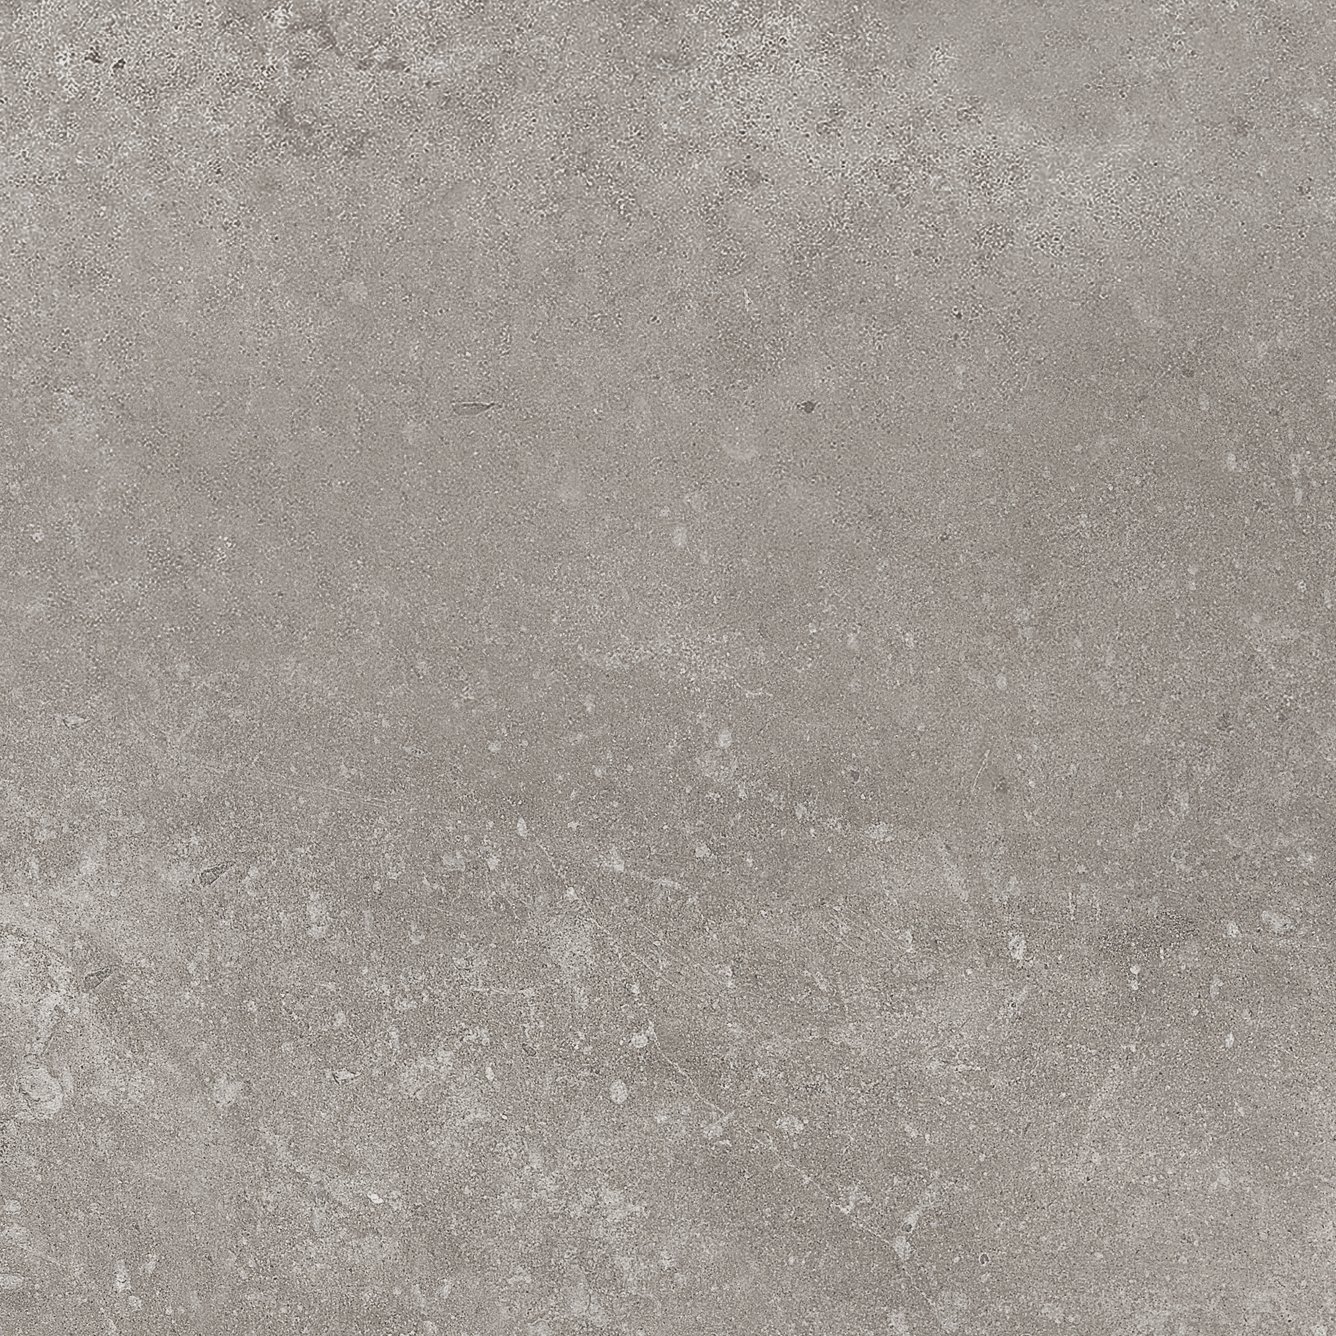 Grand canyon floor tile stone gallery - Carrelage 60x60 gris ...